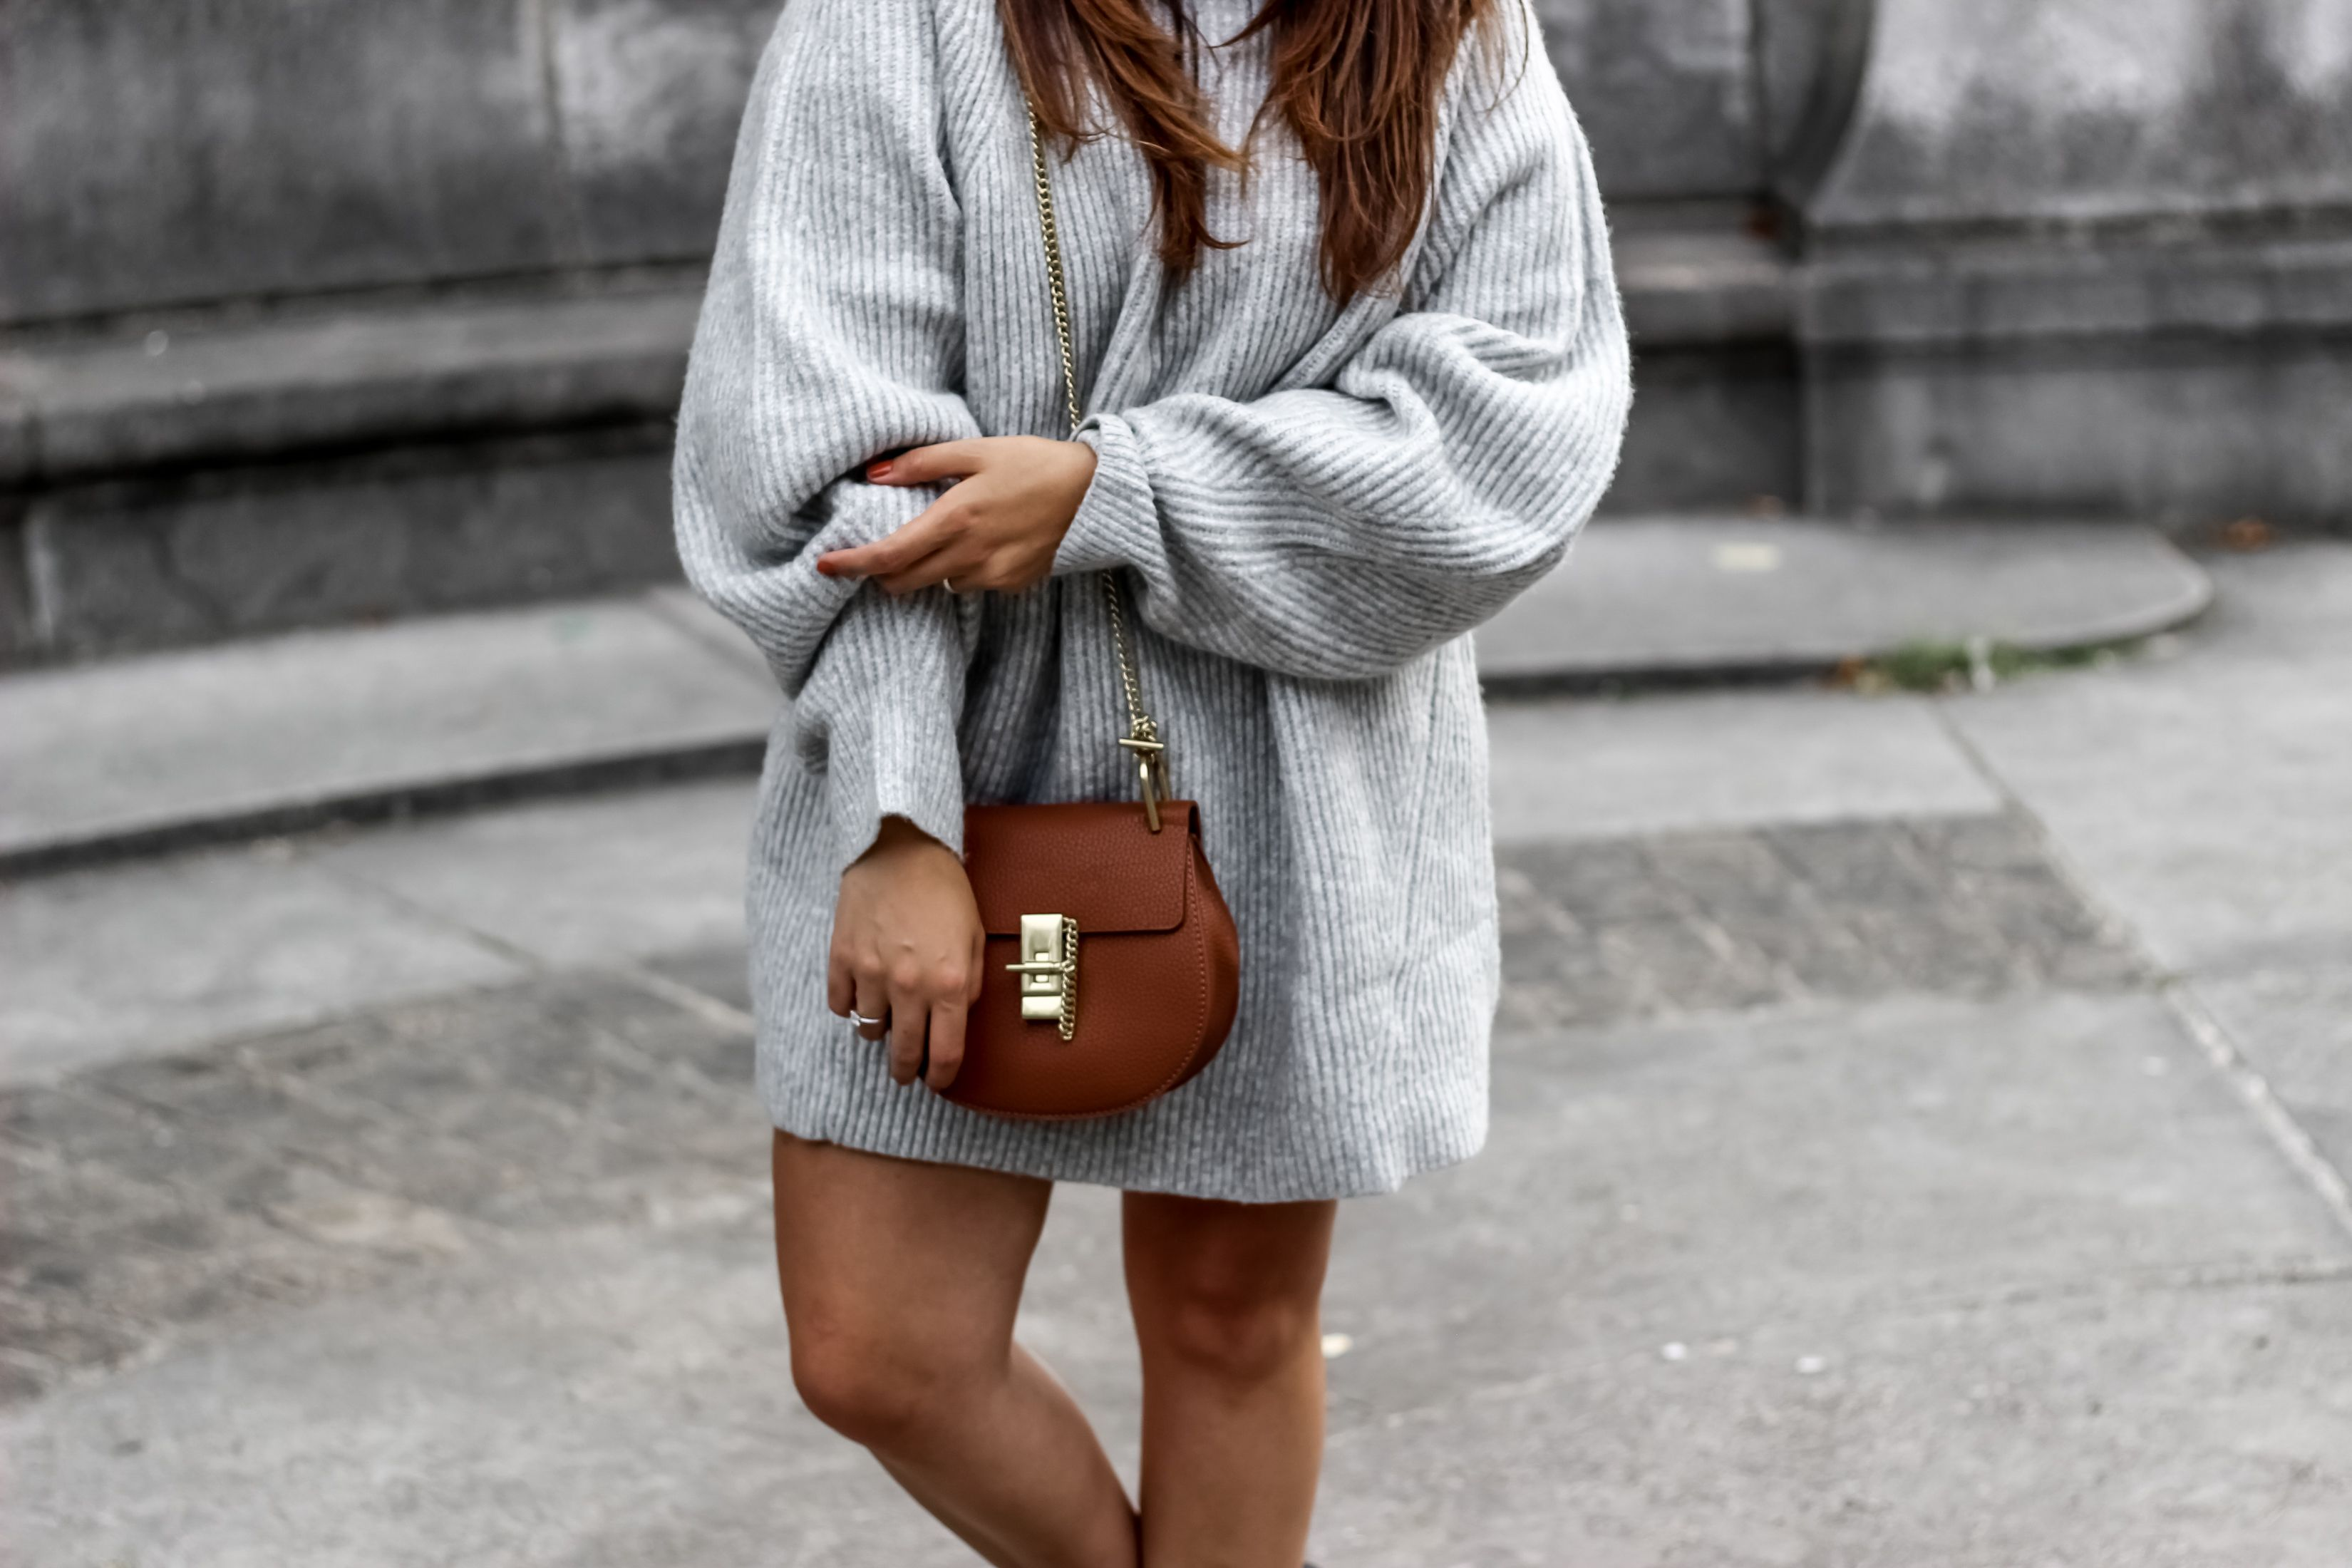 blog mode, blogueuse mode, the green ananas, shein, hm, boots cloutés femme, boots boucles femme, boots femme, pull hm, pull losse , pull acne, sac chloé, drew chloé, knitwear, pull oversize